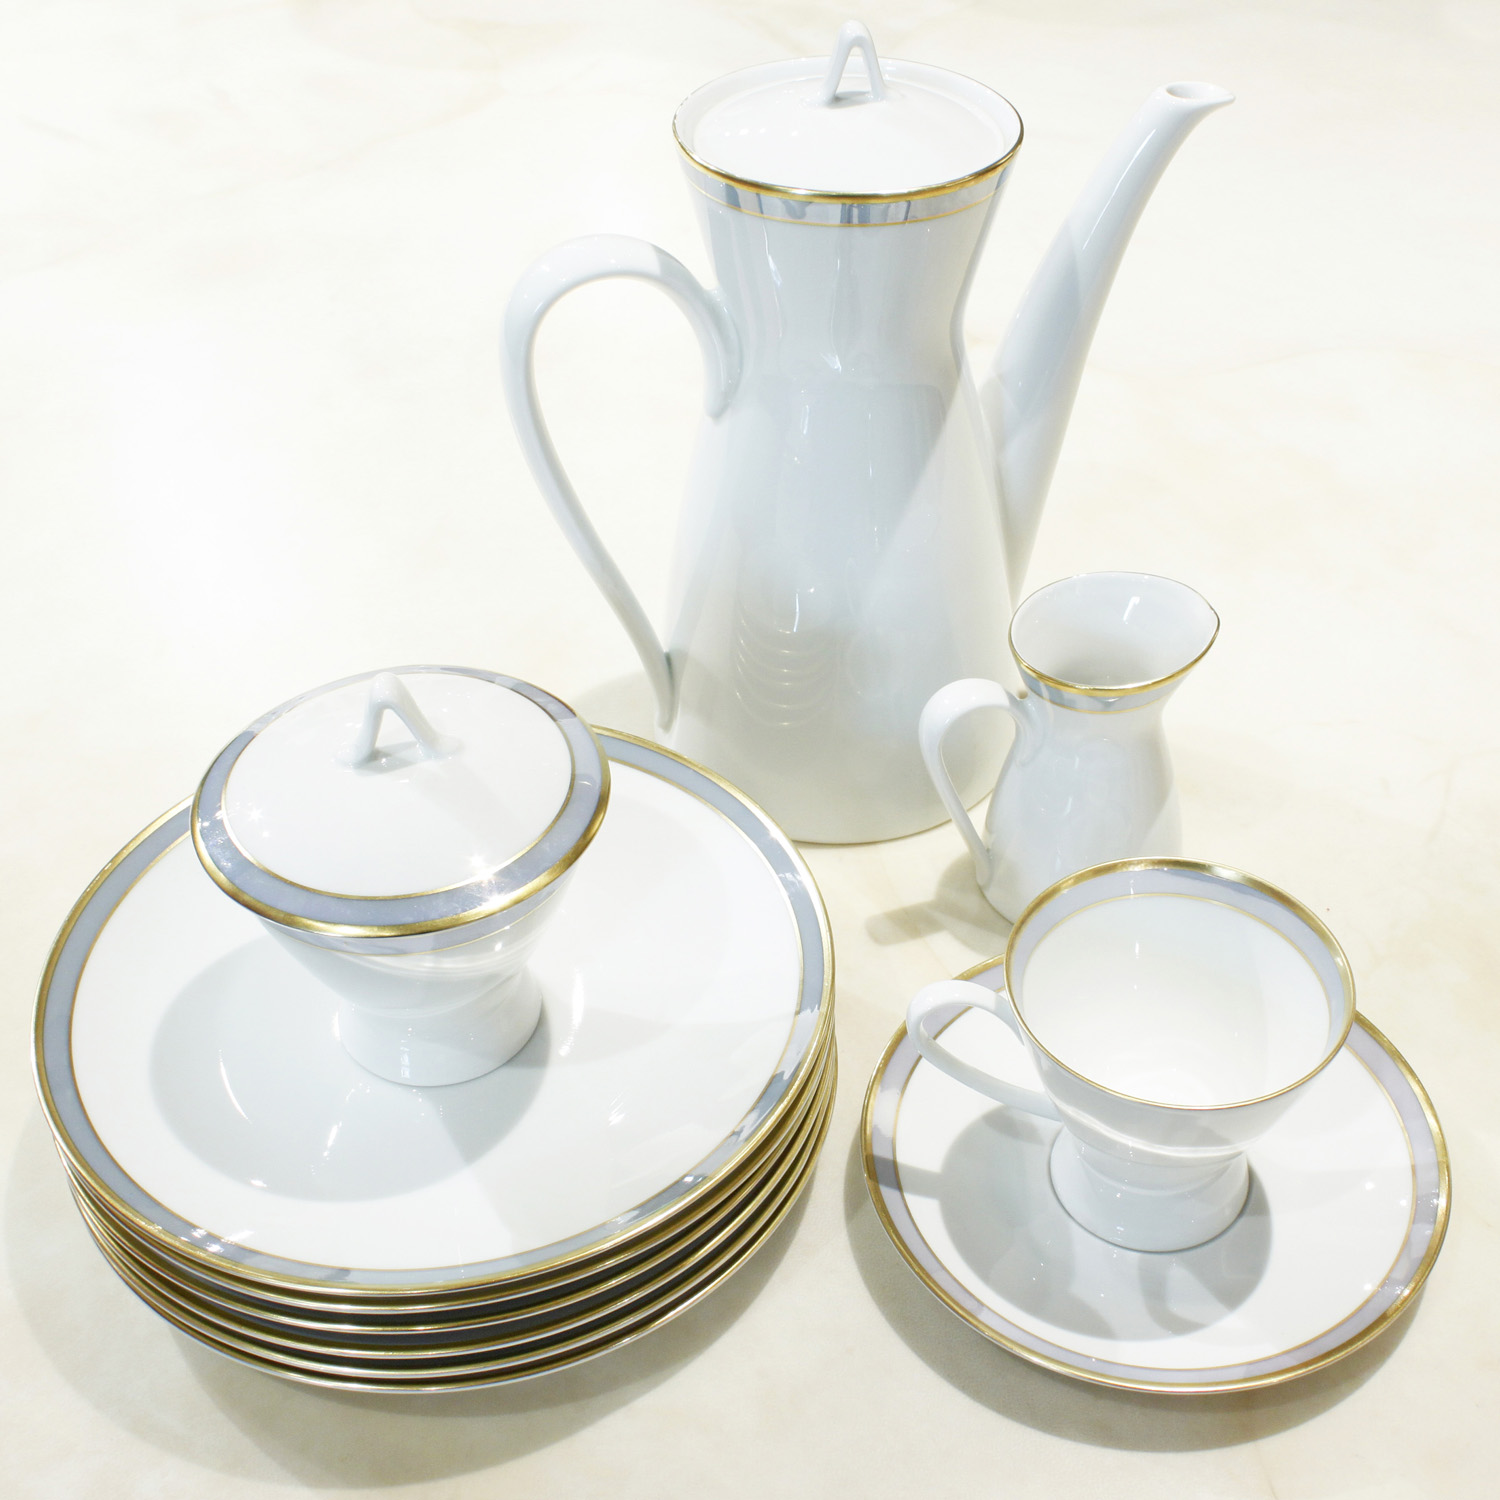 Rosenthal tea service 6 accessory151 hires main.jpg